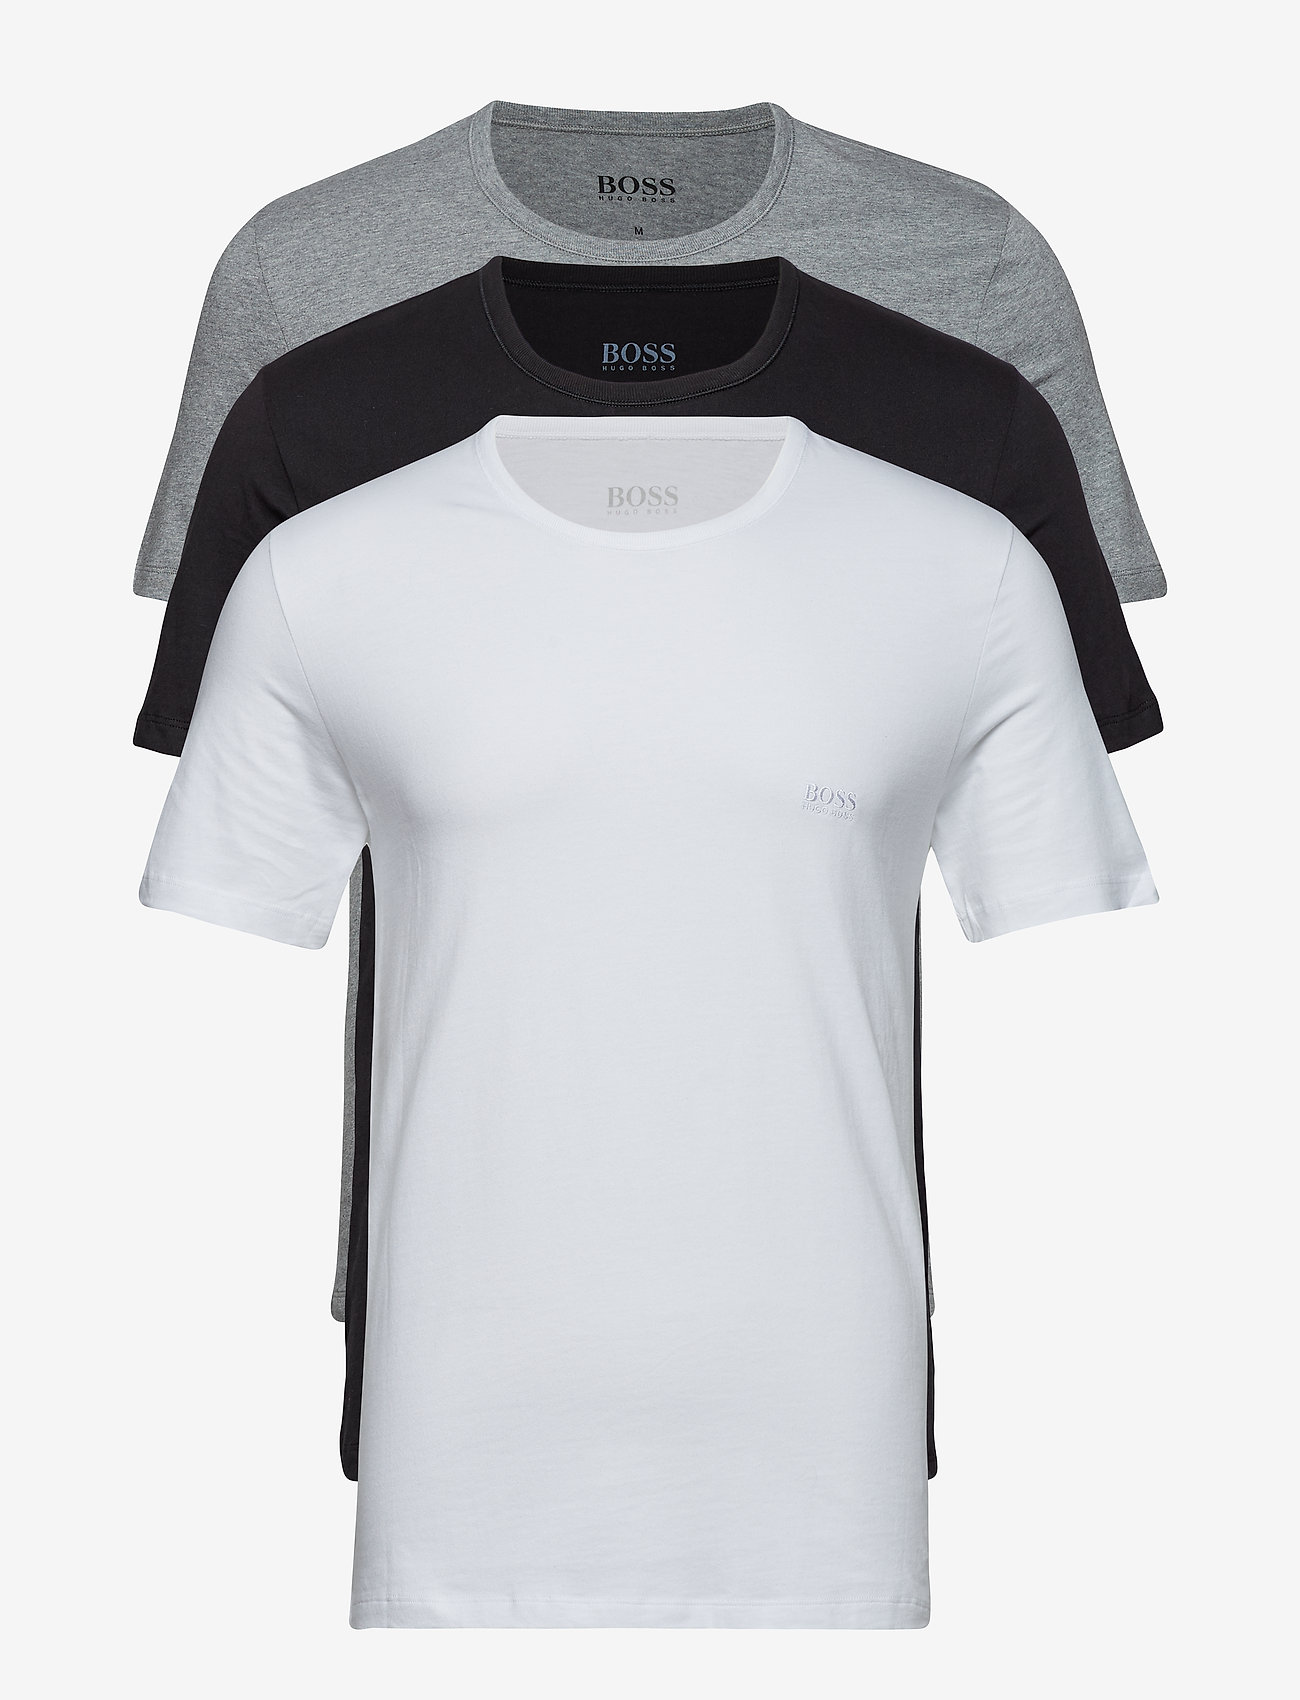 BOSS - T-Shirt RN 3P CO - multipack - assorted pre-pack - 1